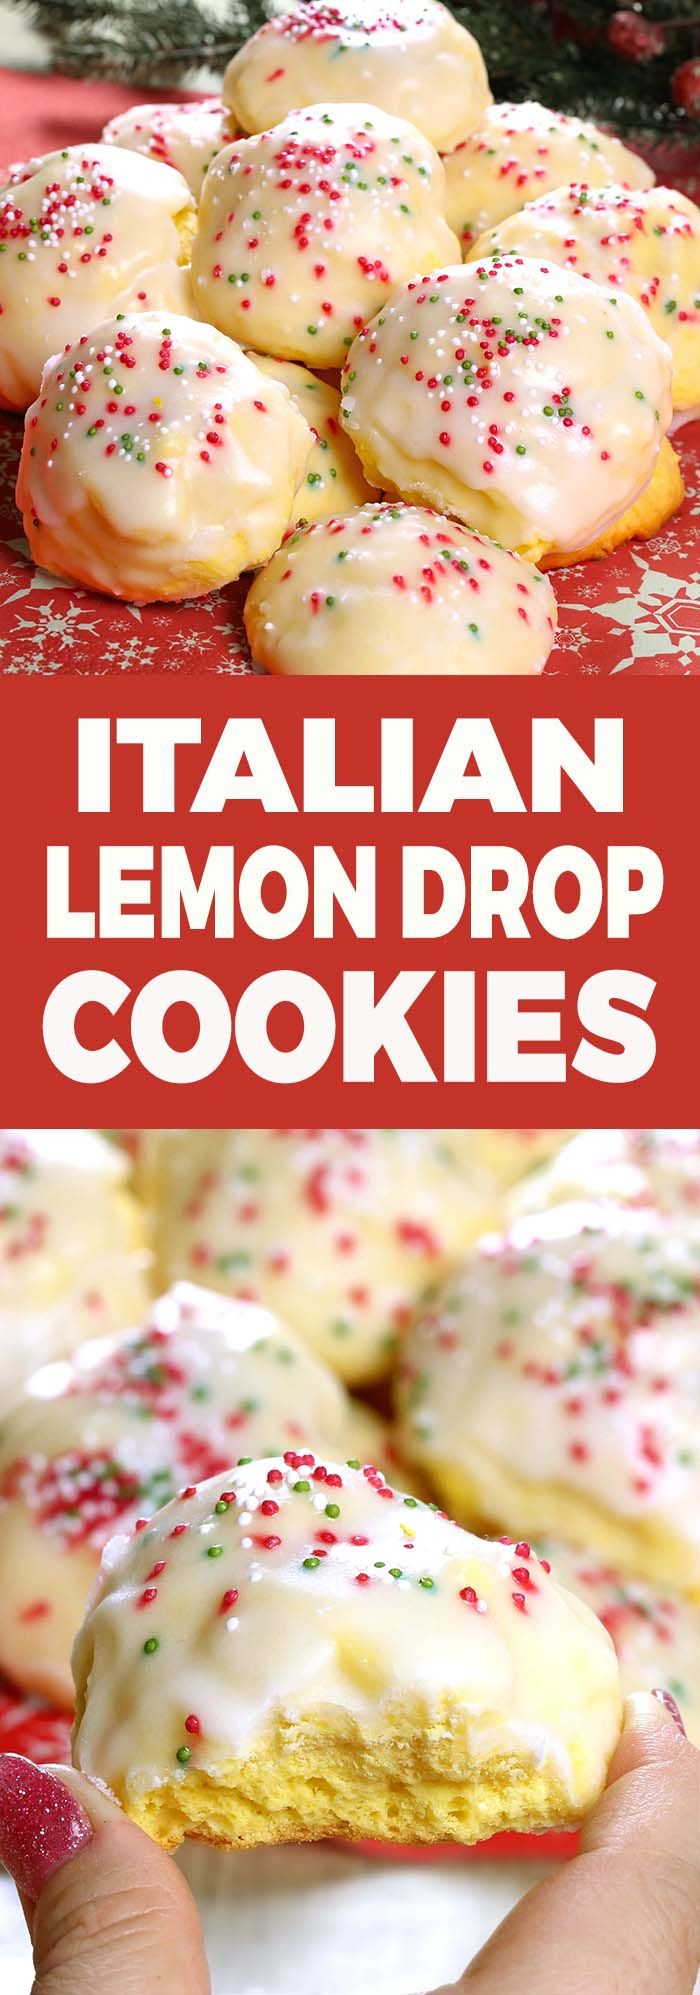 Lemon drop cookies, iced Italian cookies or anginetti, whatever your family calls them you'll be sure to find these traditional Italian cookies at many special occasions and holiday cookie trays.